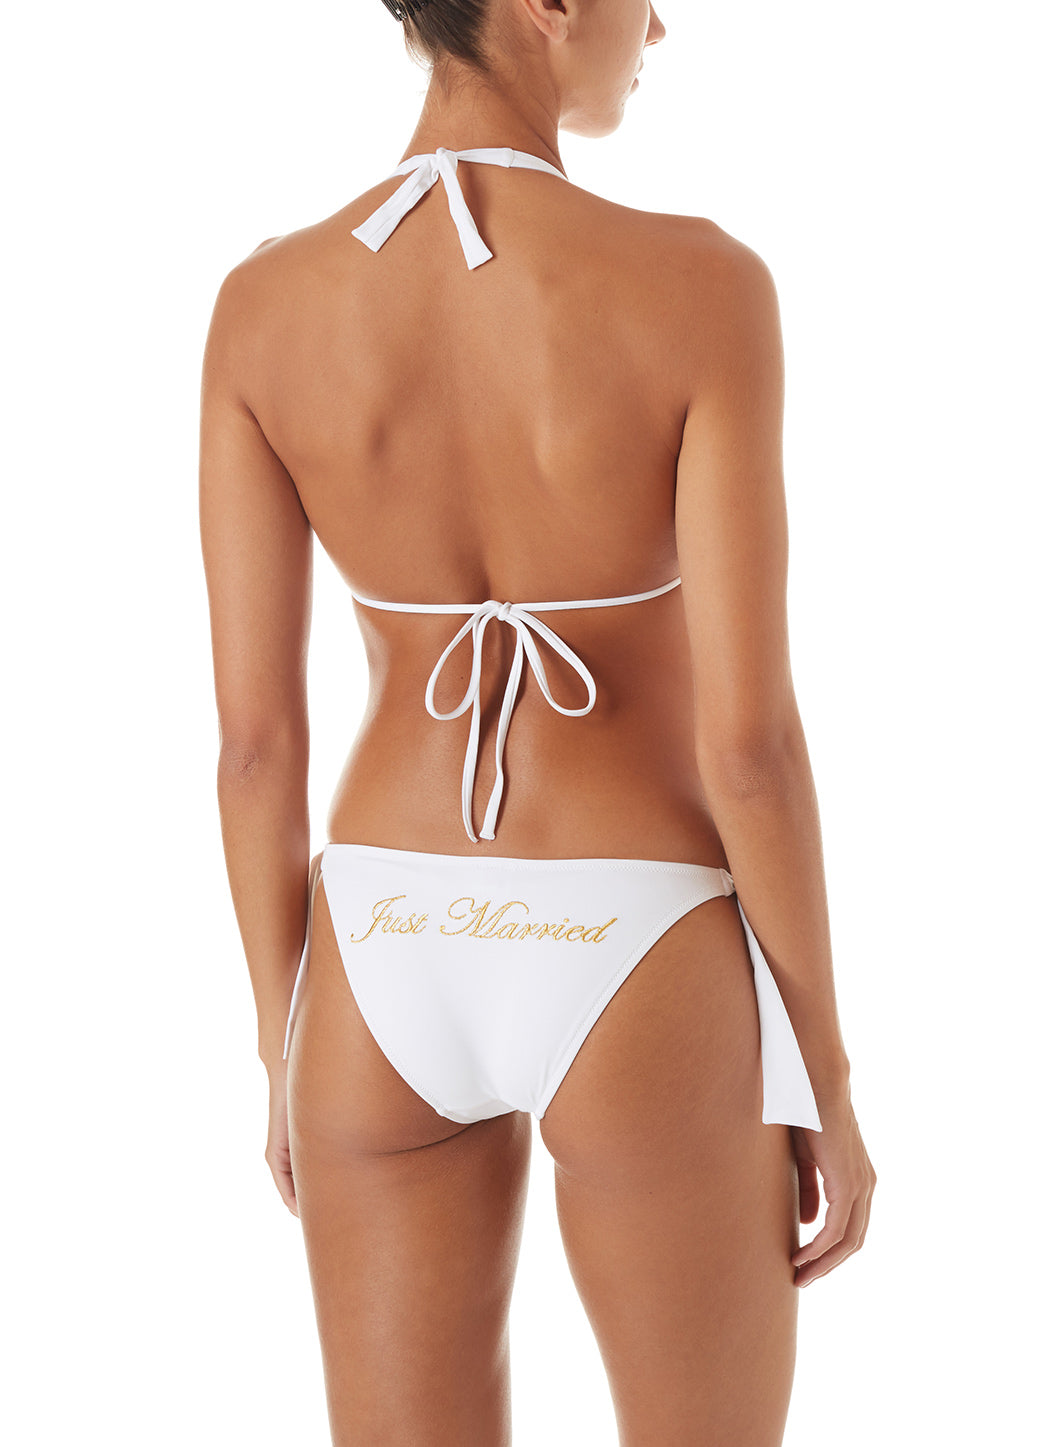 Maldives White Just Married Bikini - Melissa Odabash White Bikinis